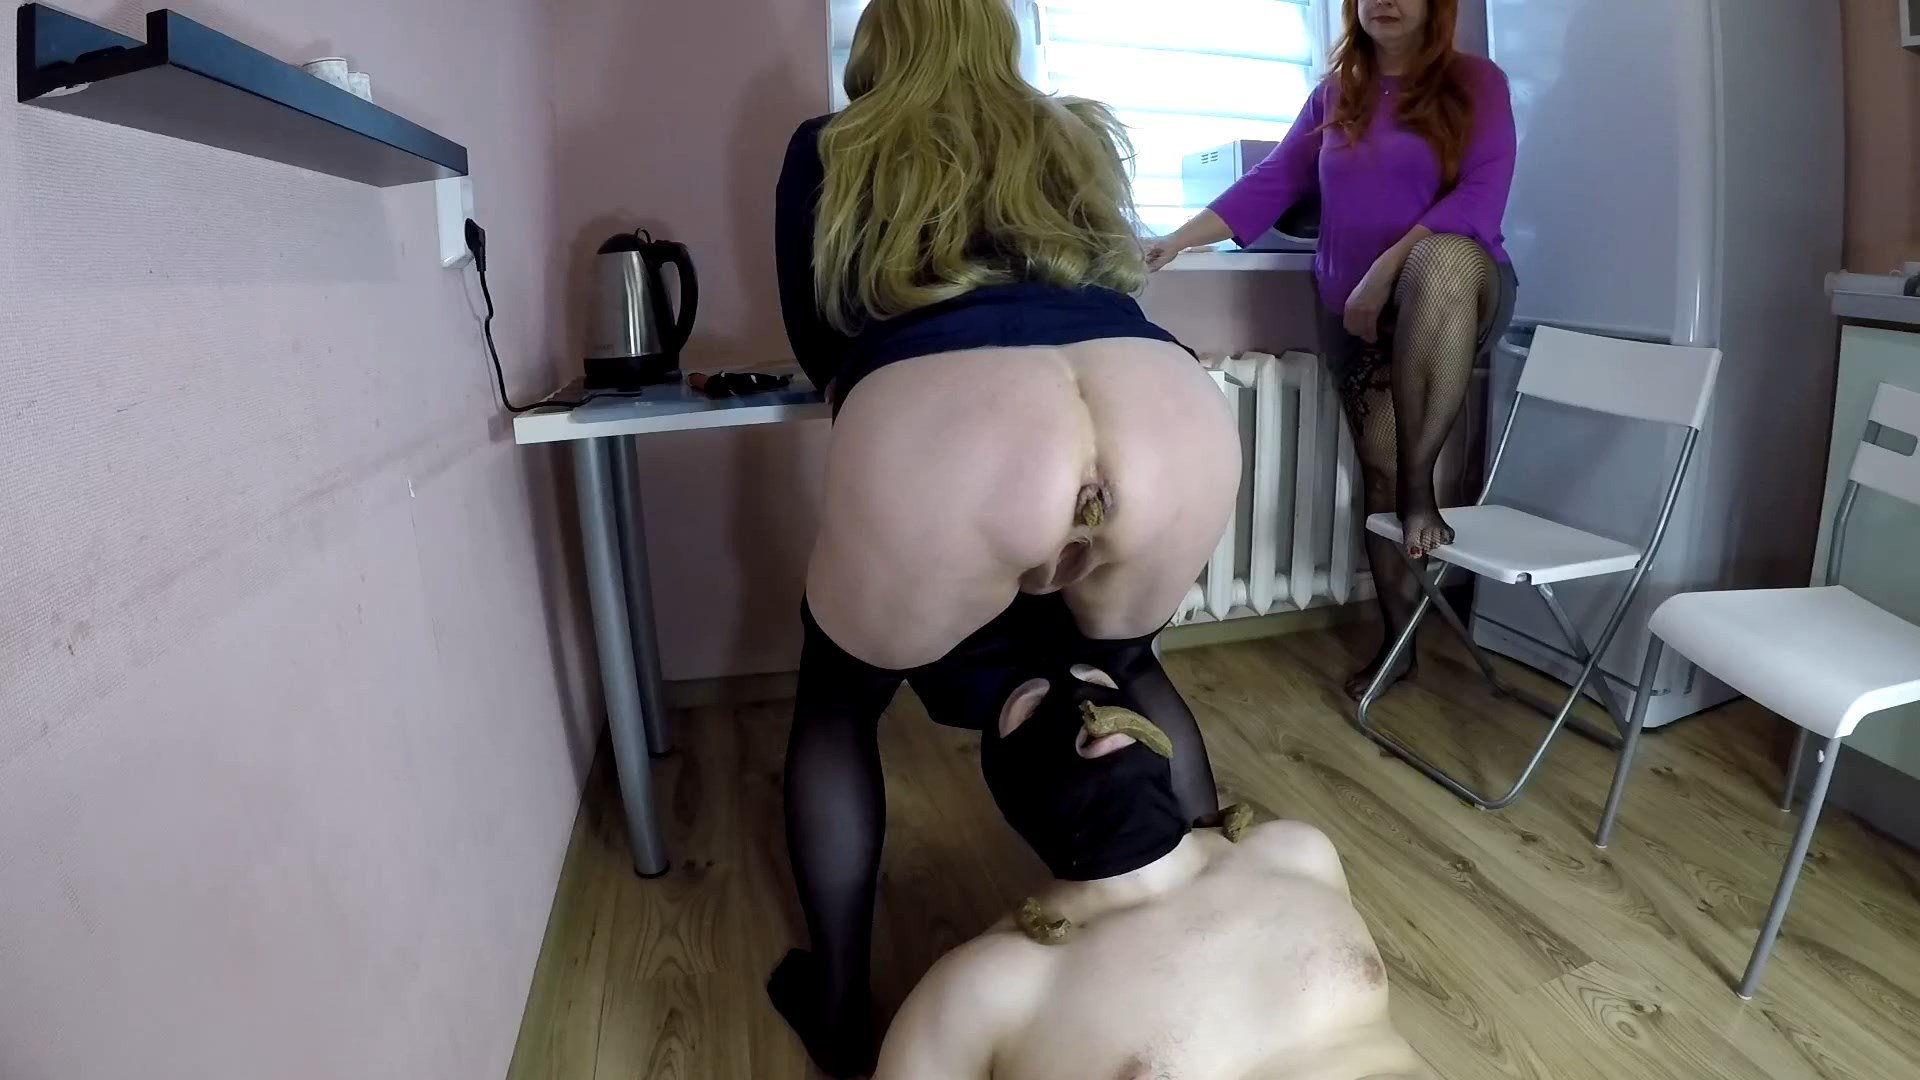 Annalise – Power of Smelly Shit